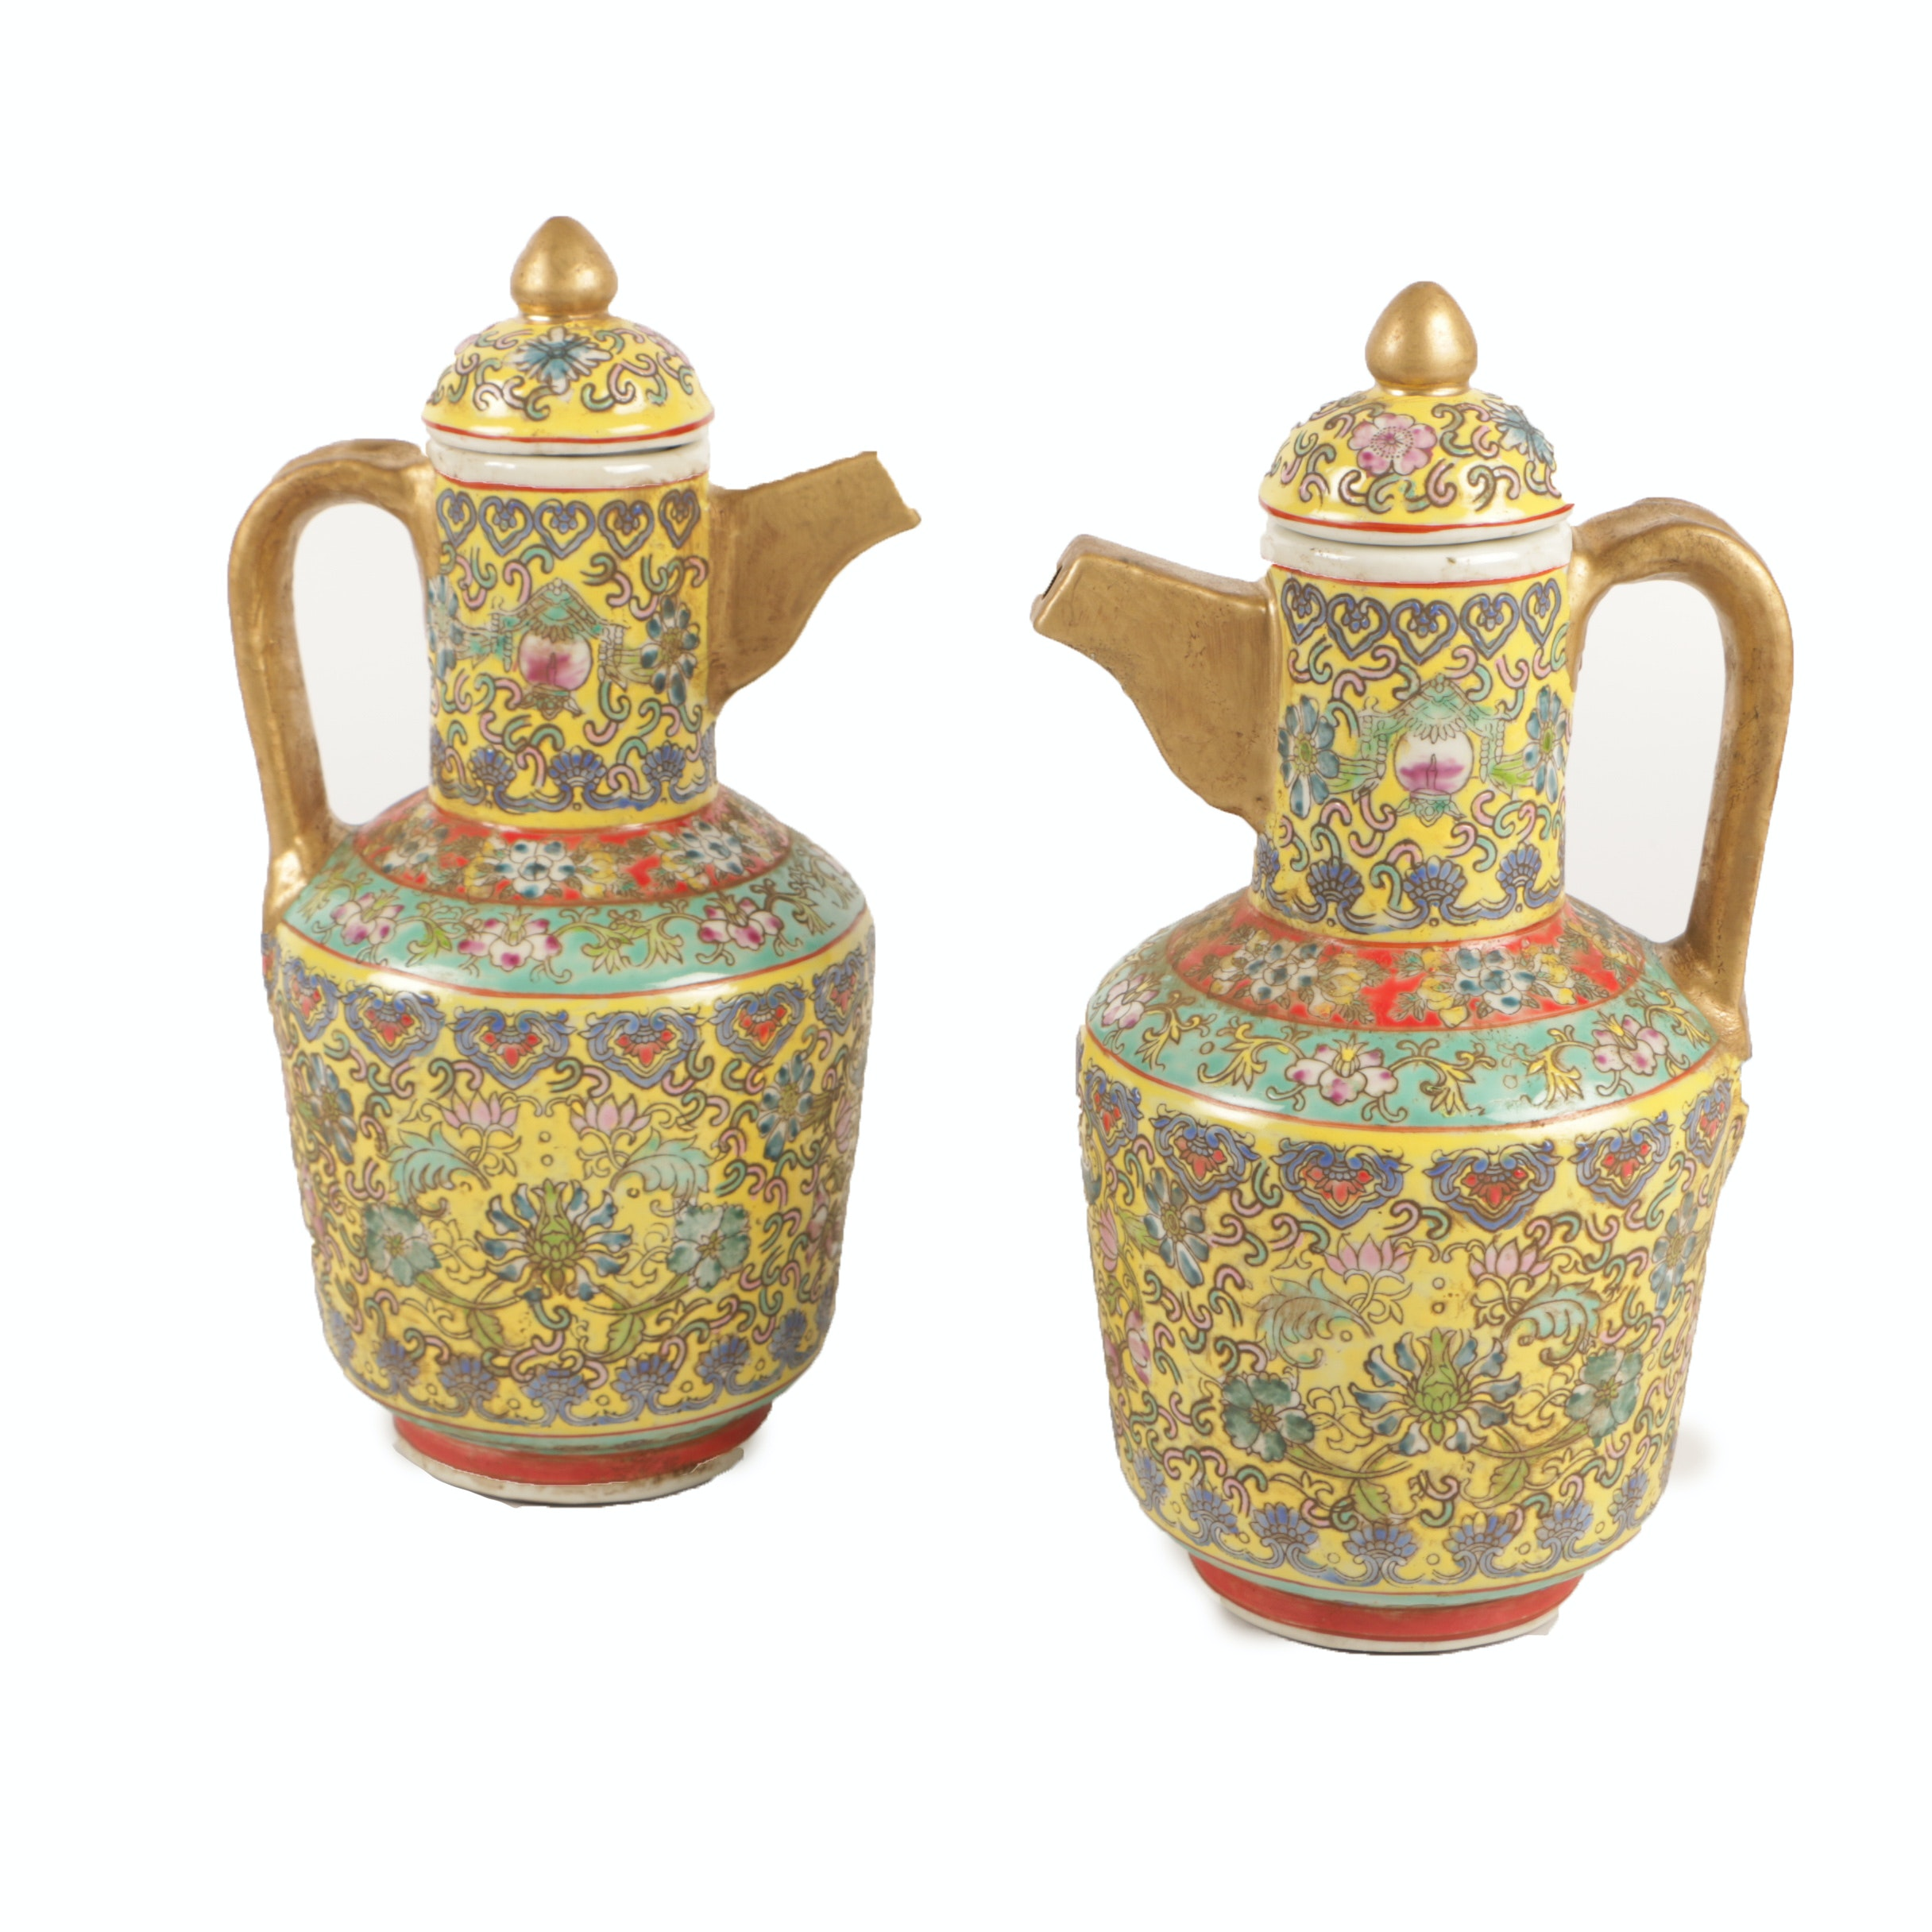 Chinese Famille Jaune Style Floral Themed Porcelain Coffee Pots with Gilt Trim